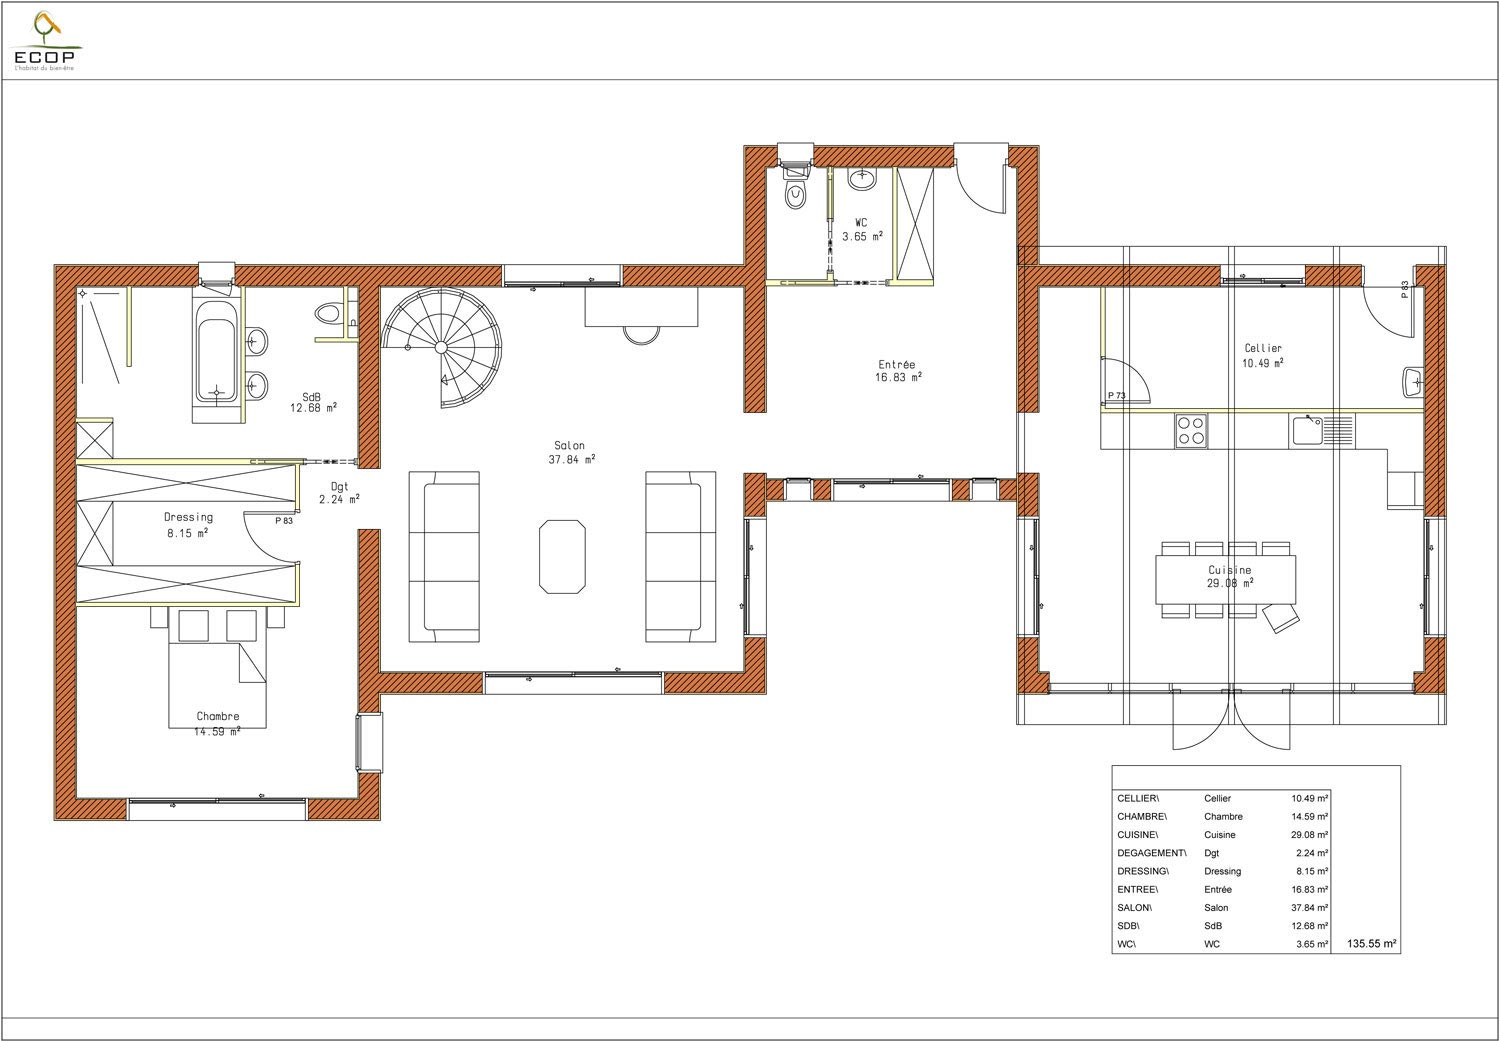 Plan Interieur Maison En D Of Maison Image Photo Arts Et Voyages